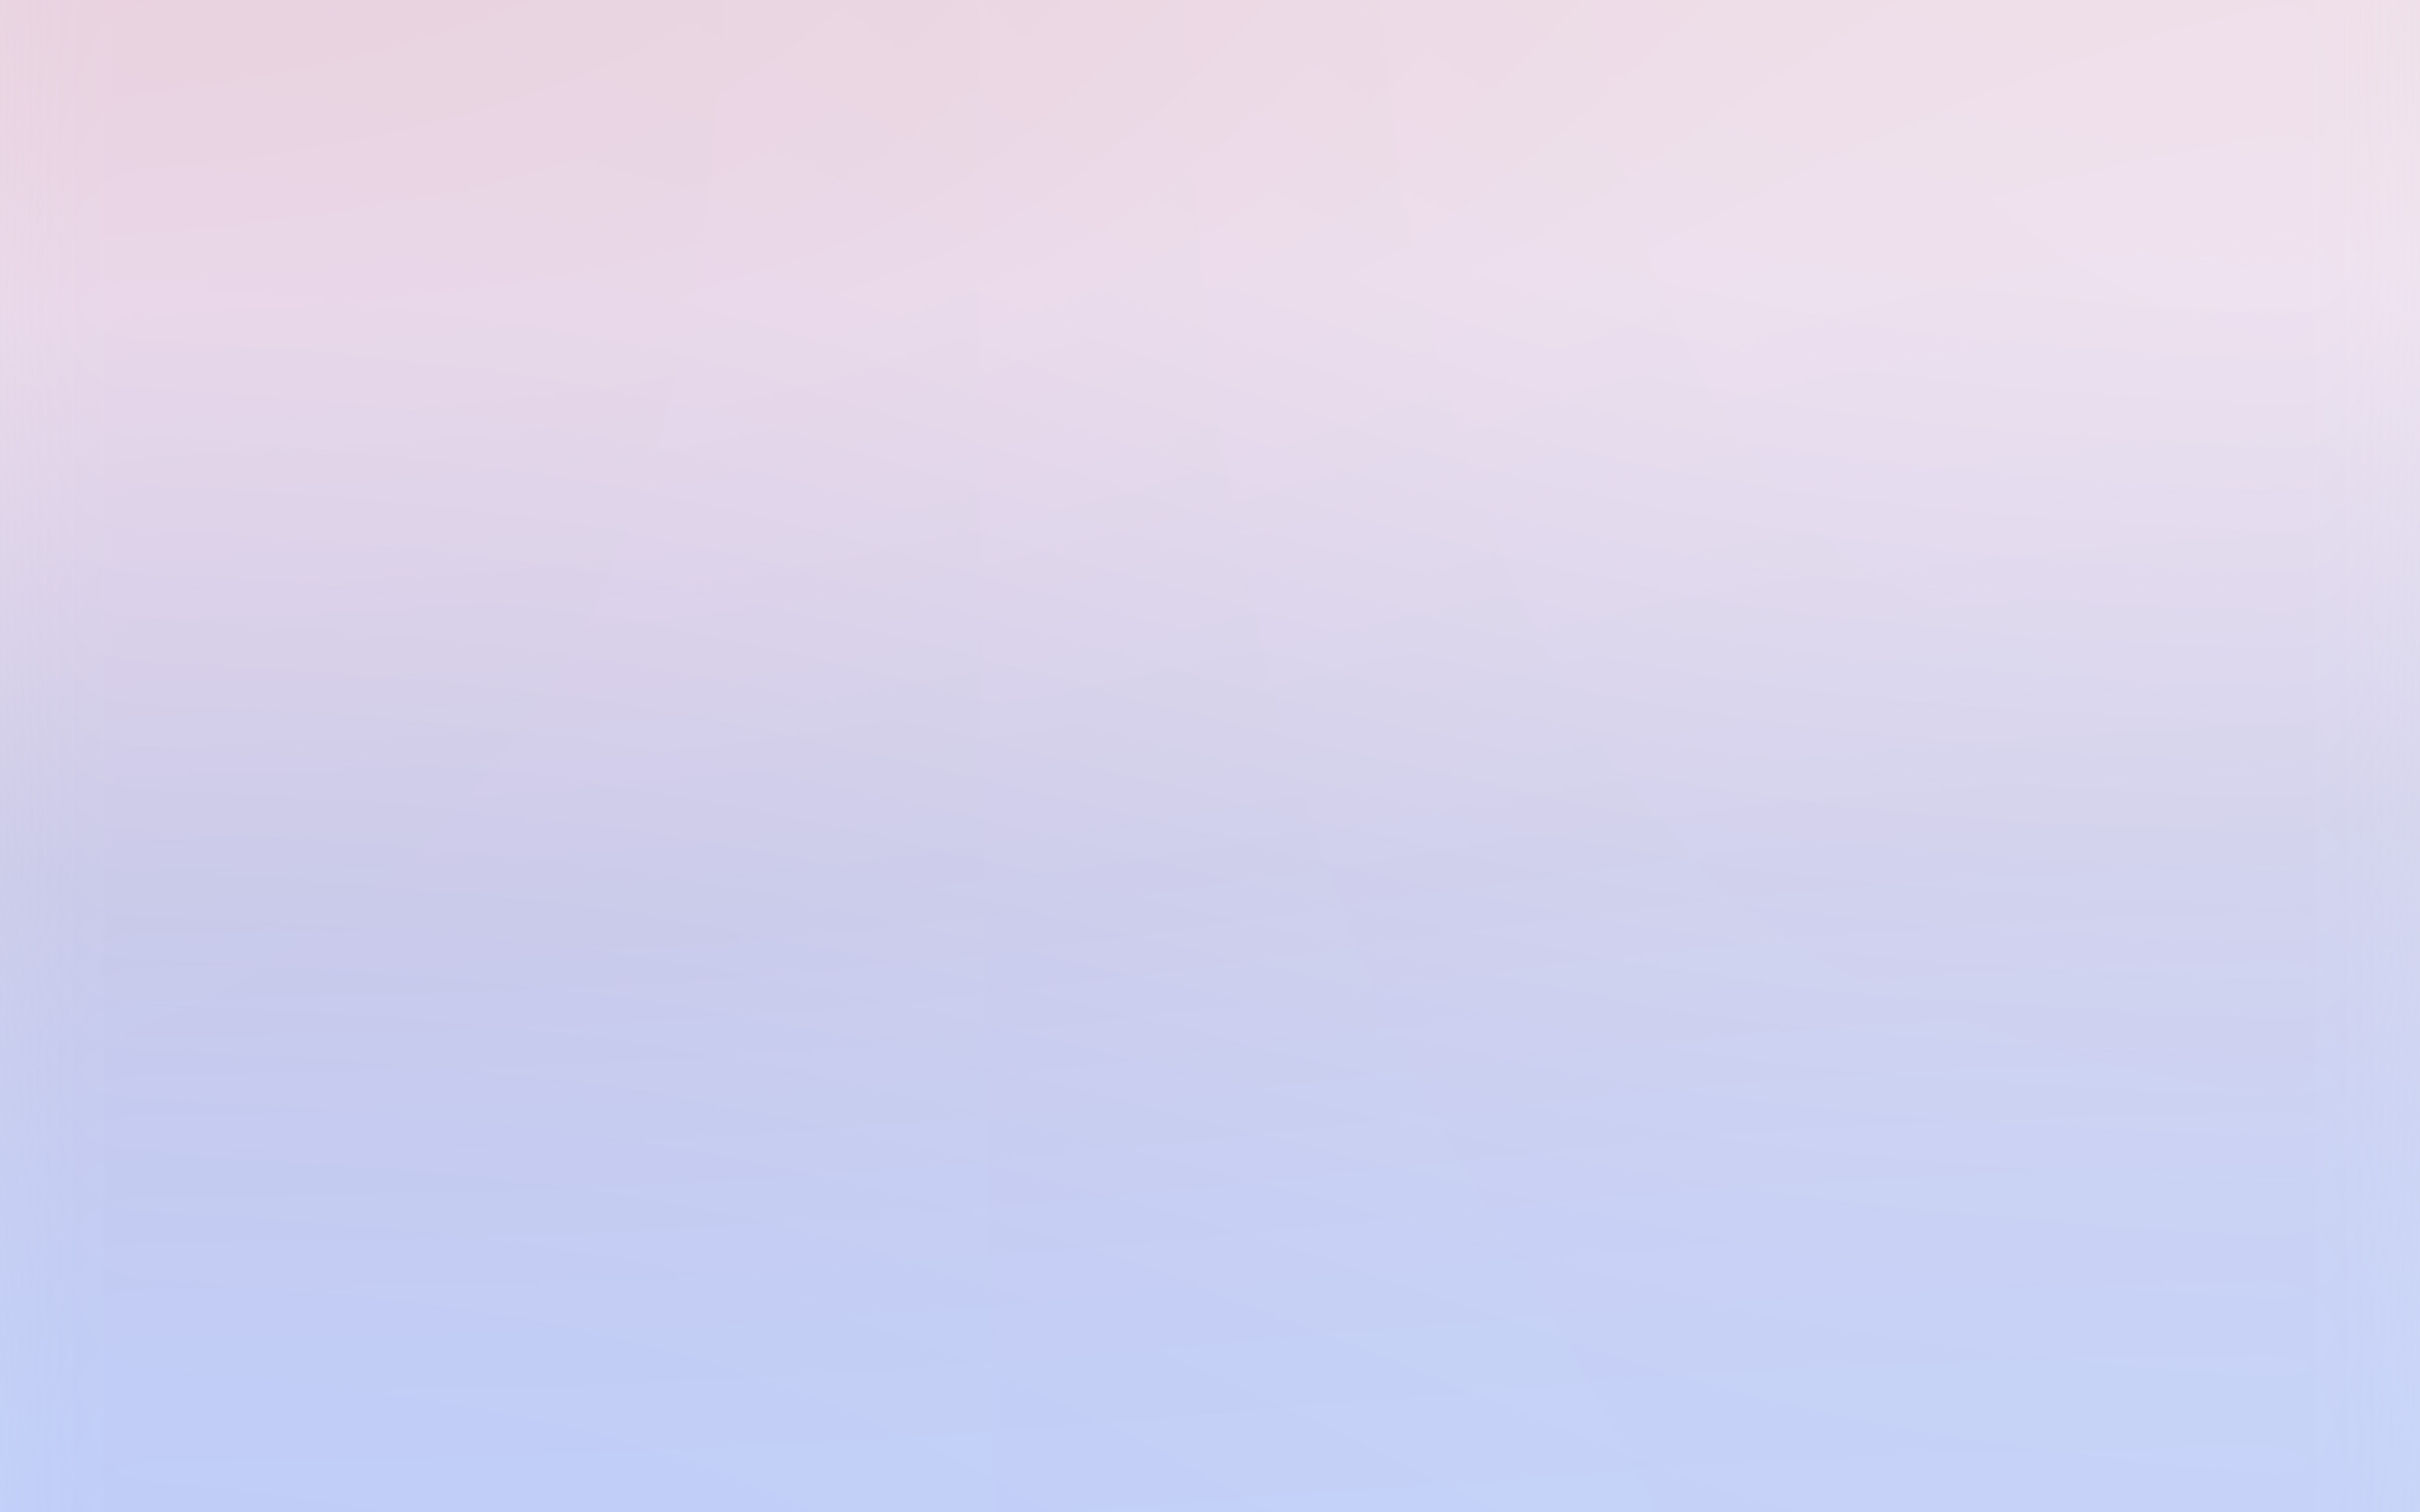 sm55-pastel-blue-red-morning-blur-gradation-wallpaper